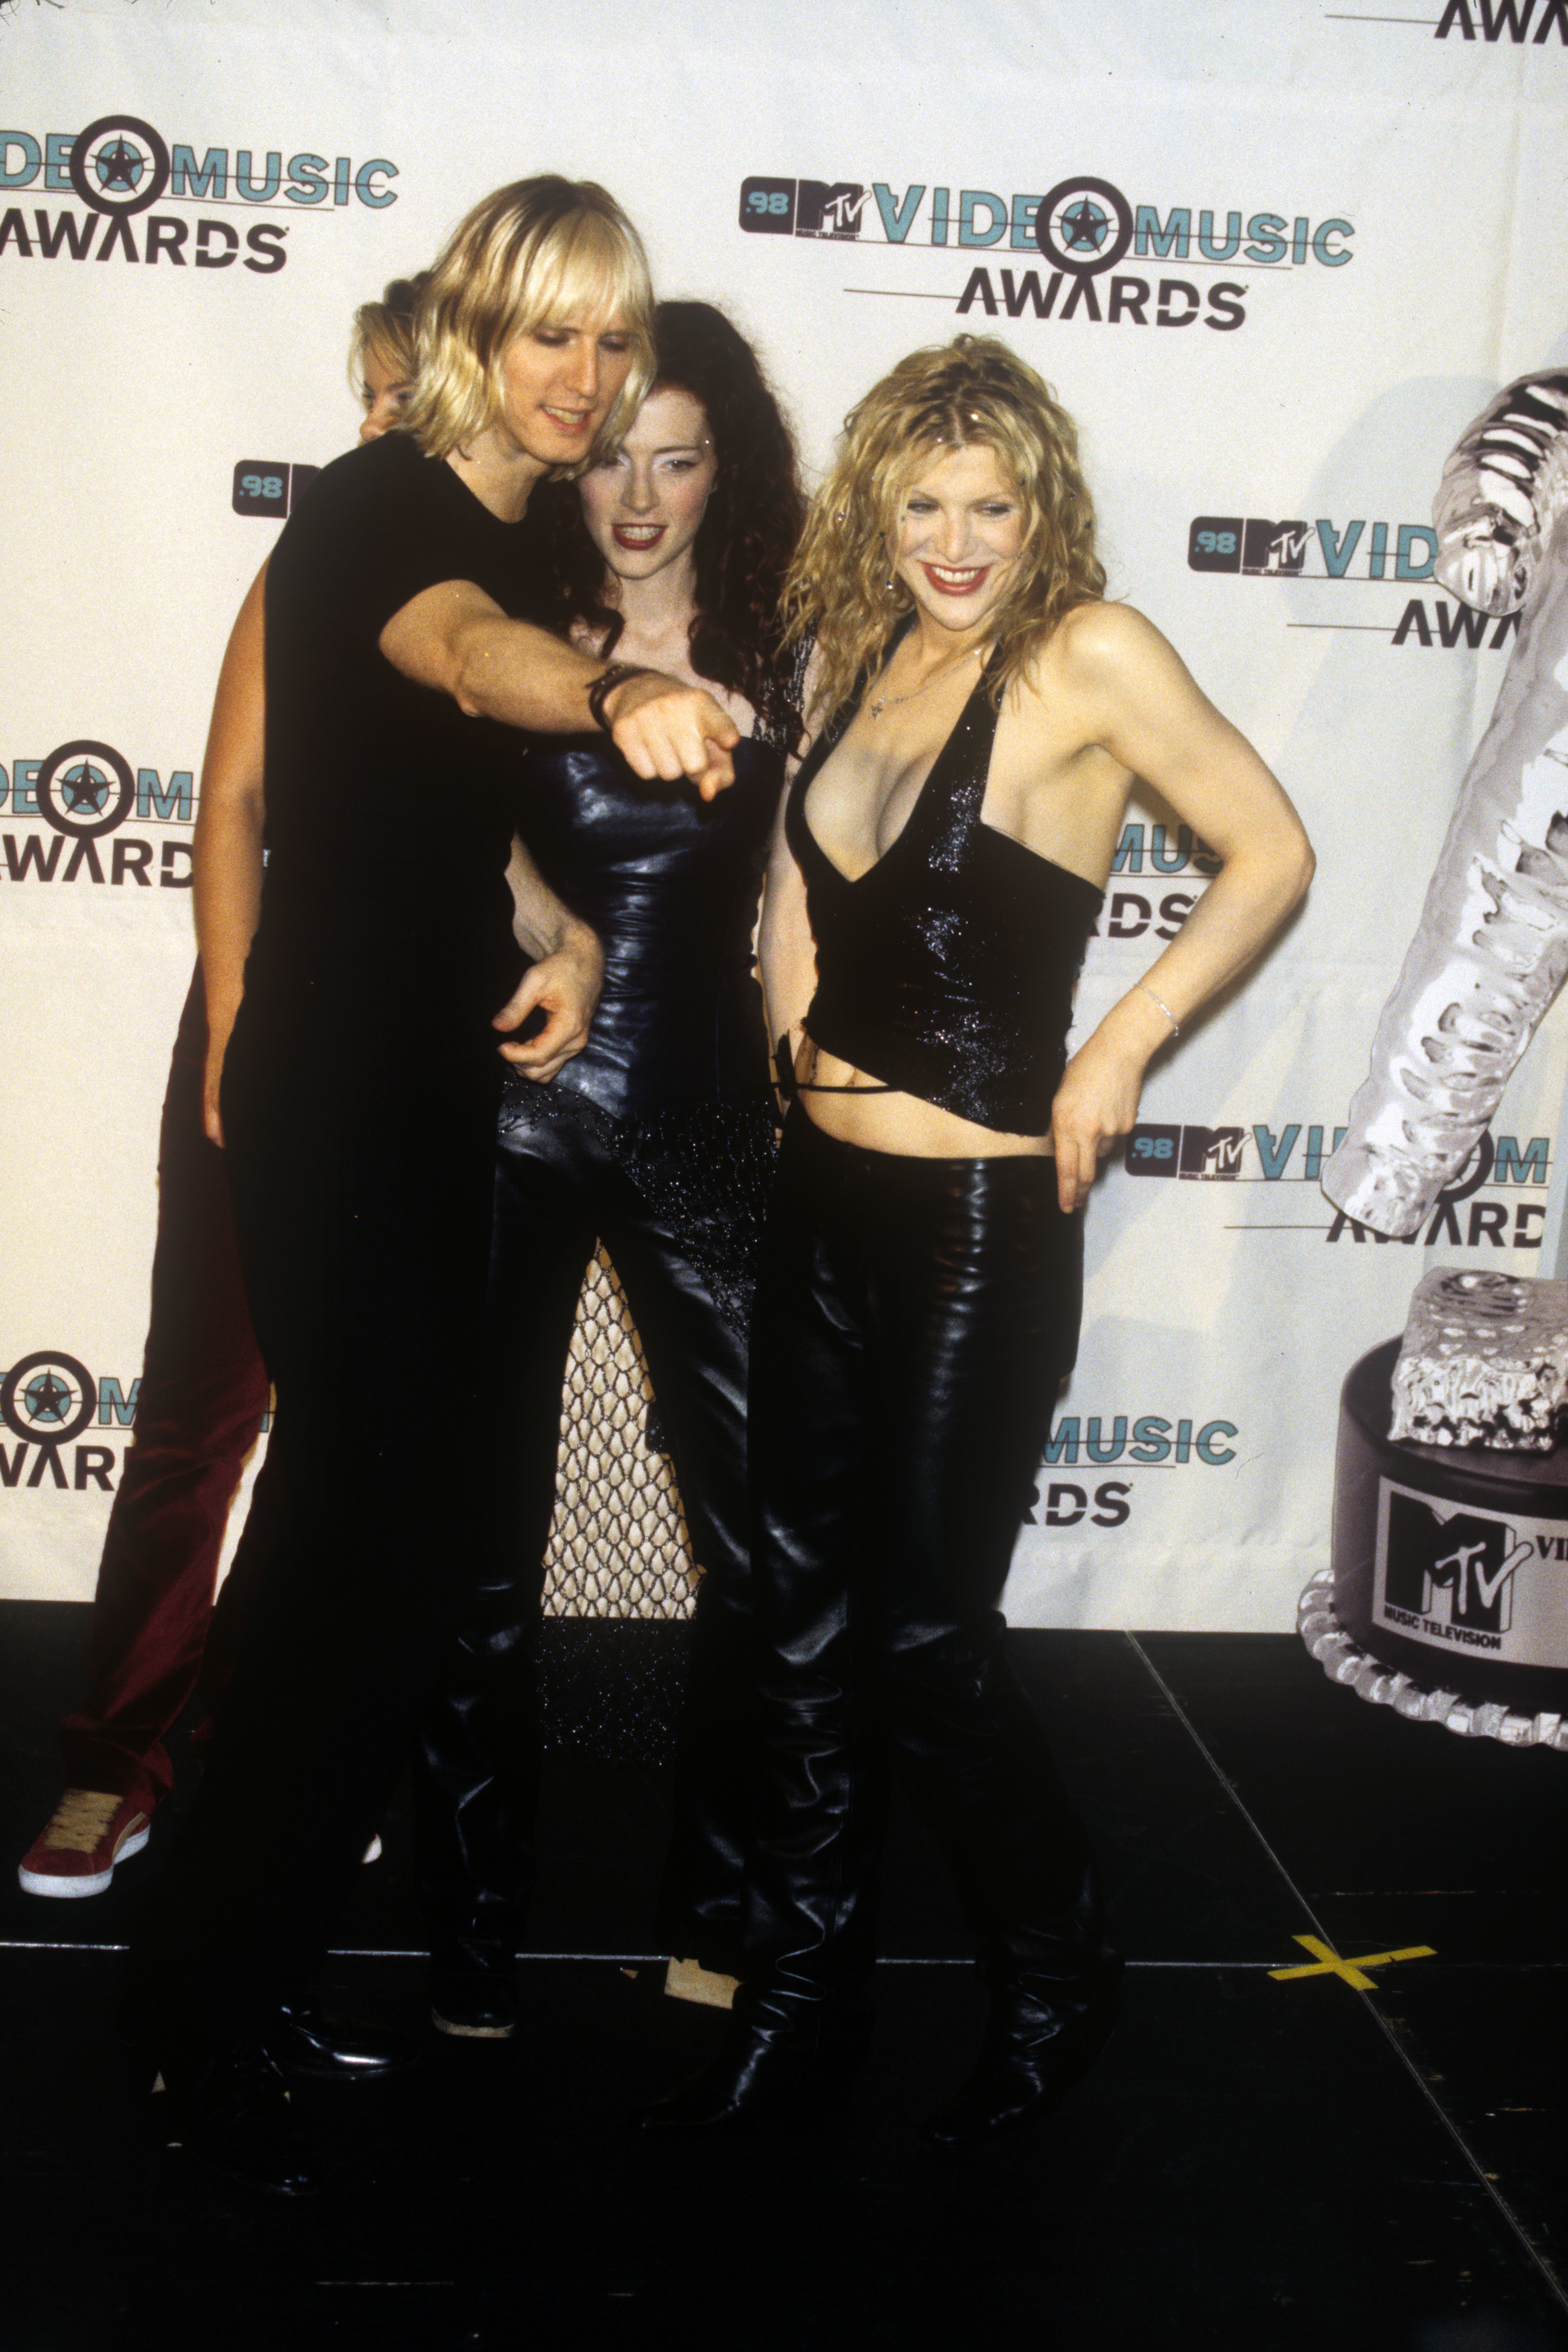 Courtney Love and her band Hole attending the MTV Video Music Awards at the Gibson Amphitheatre in Los Angeles on Sept. 10, 1998.